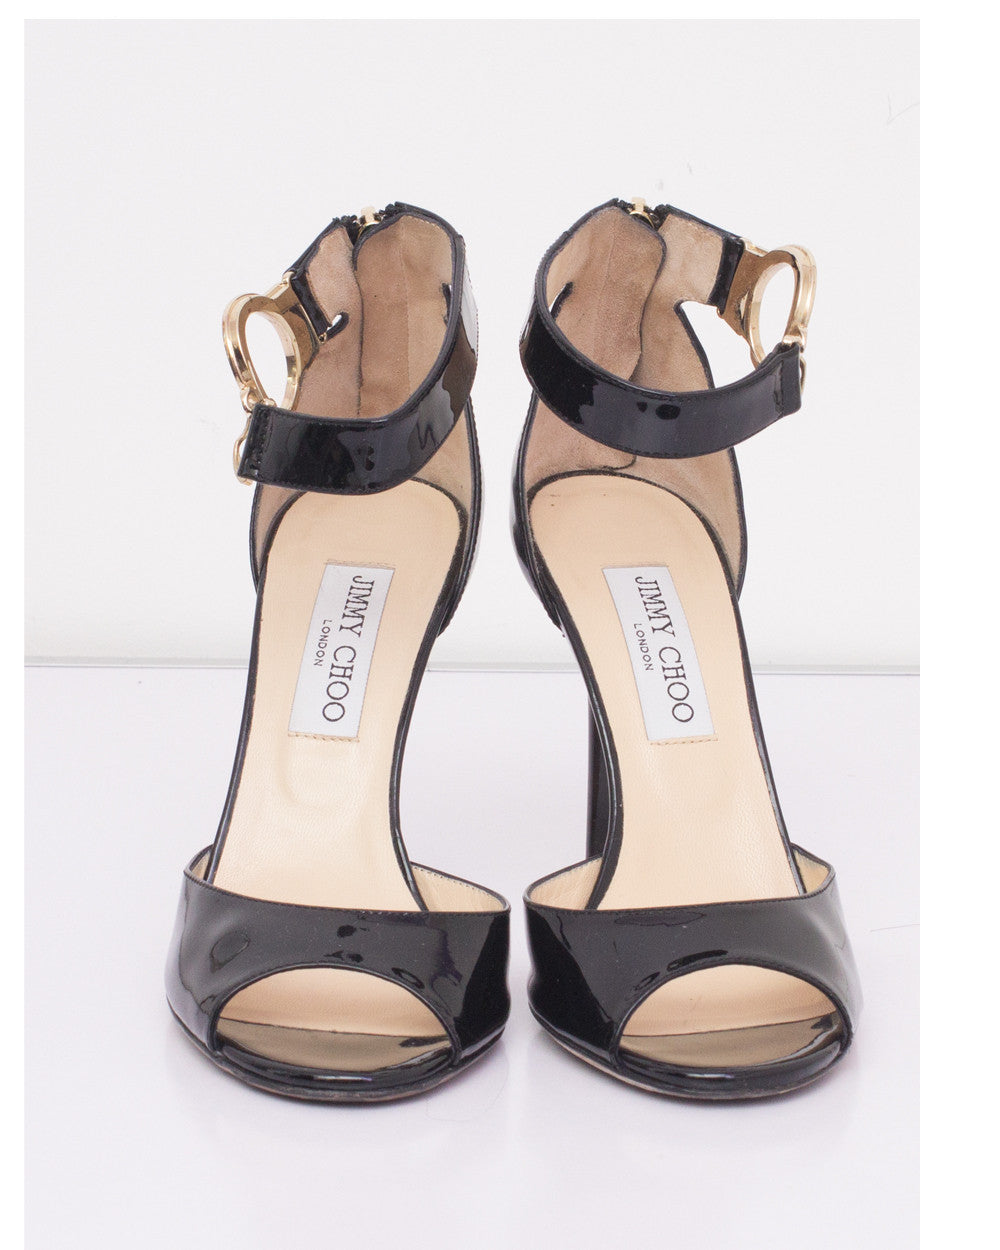 Black Patent Deuce Sandals